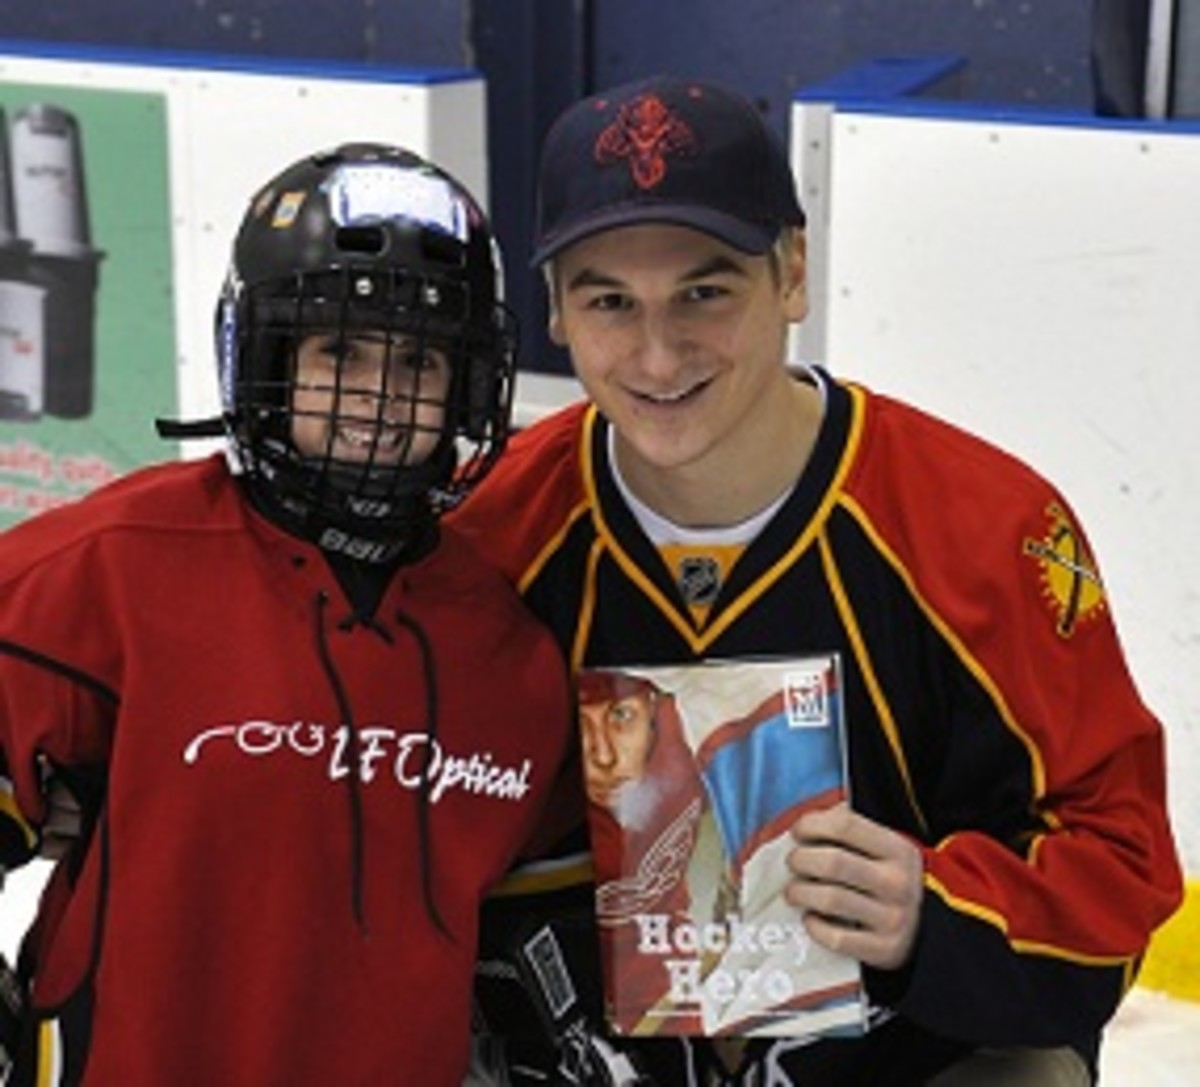 Zach Hyman: Successful NHL Player and Children's Book Author